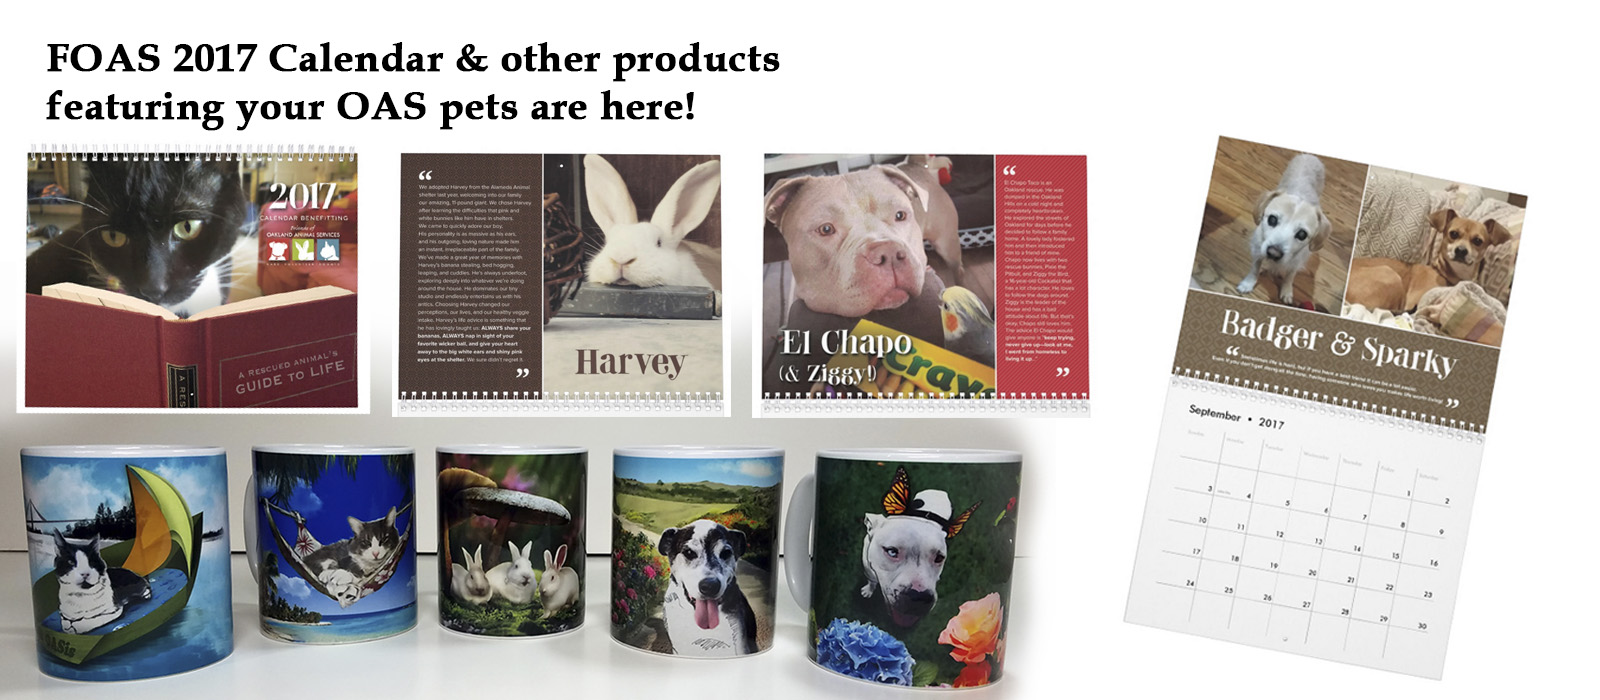 FOAS Zazzle products featuring your OAS pets!